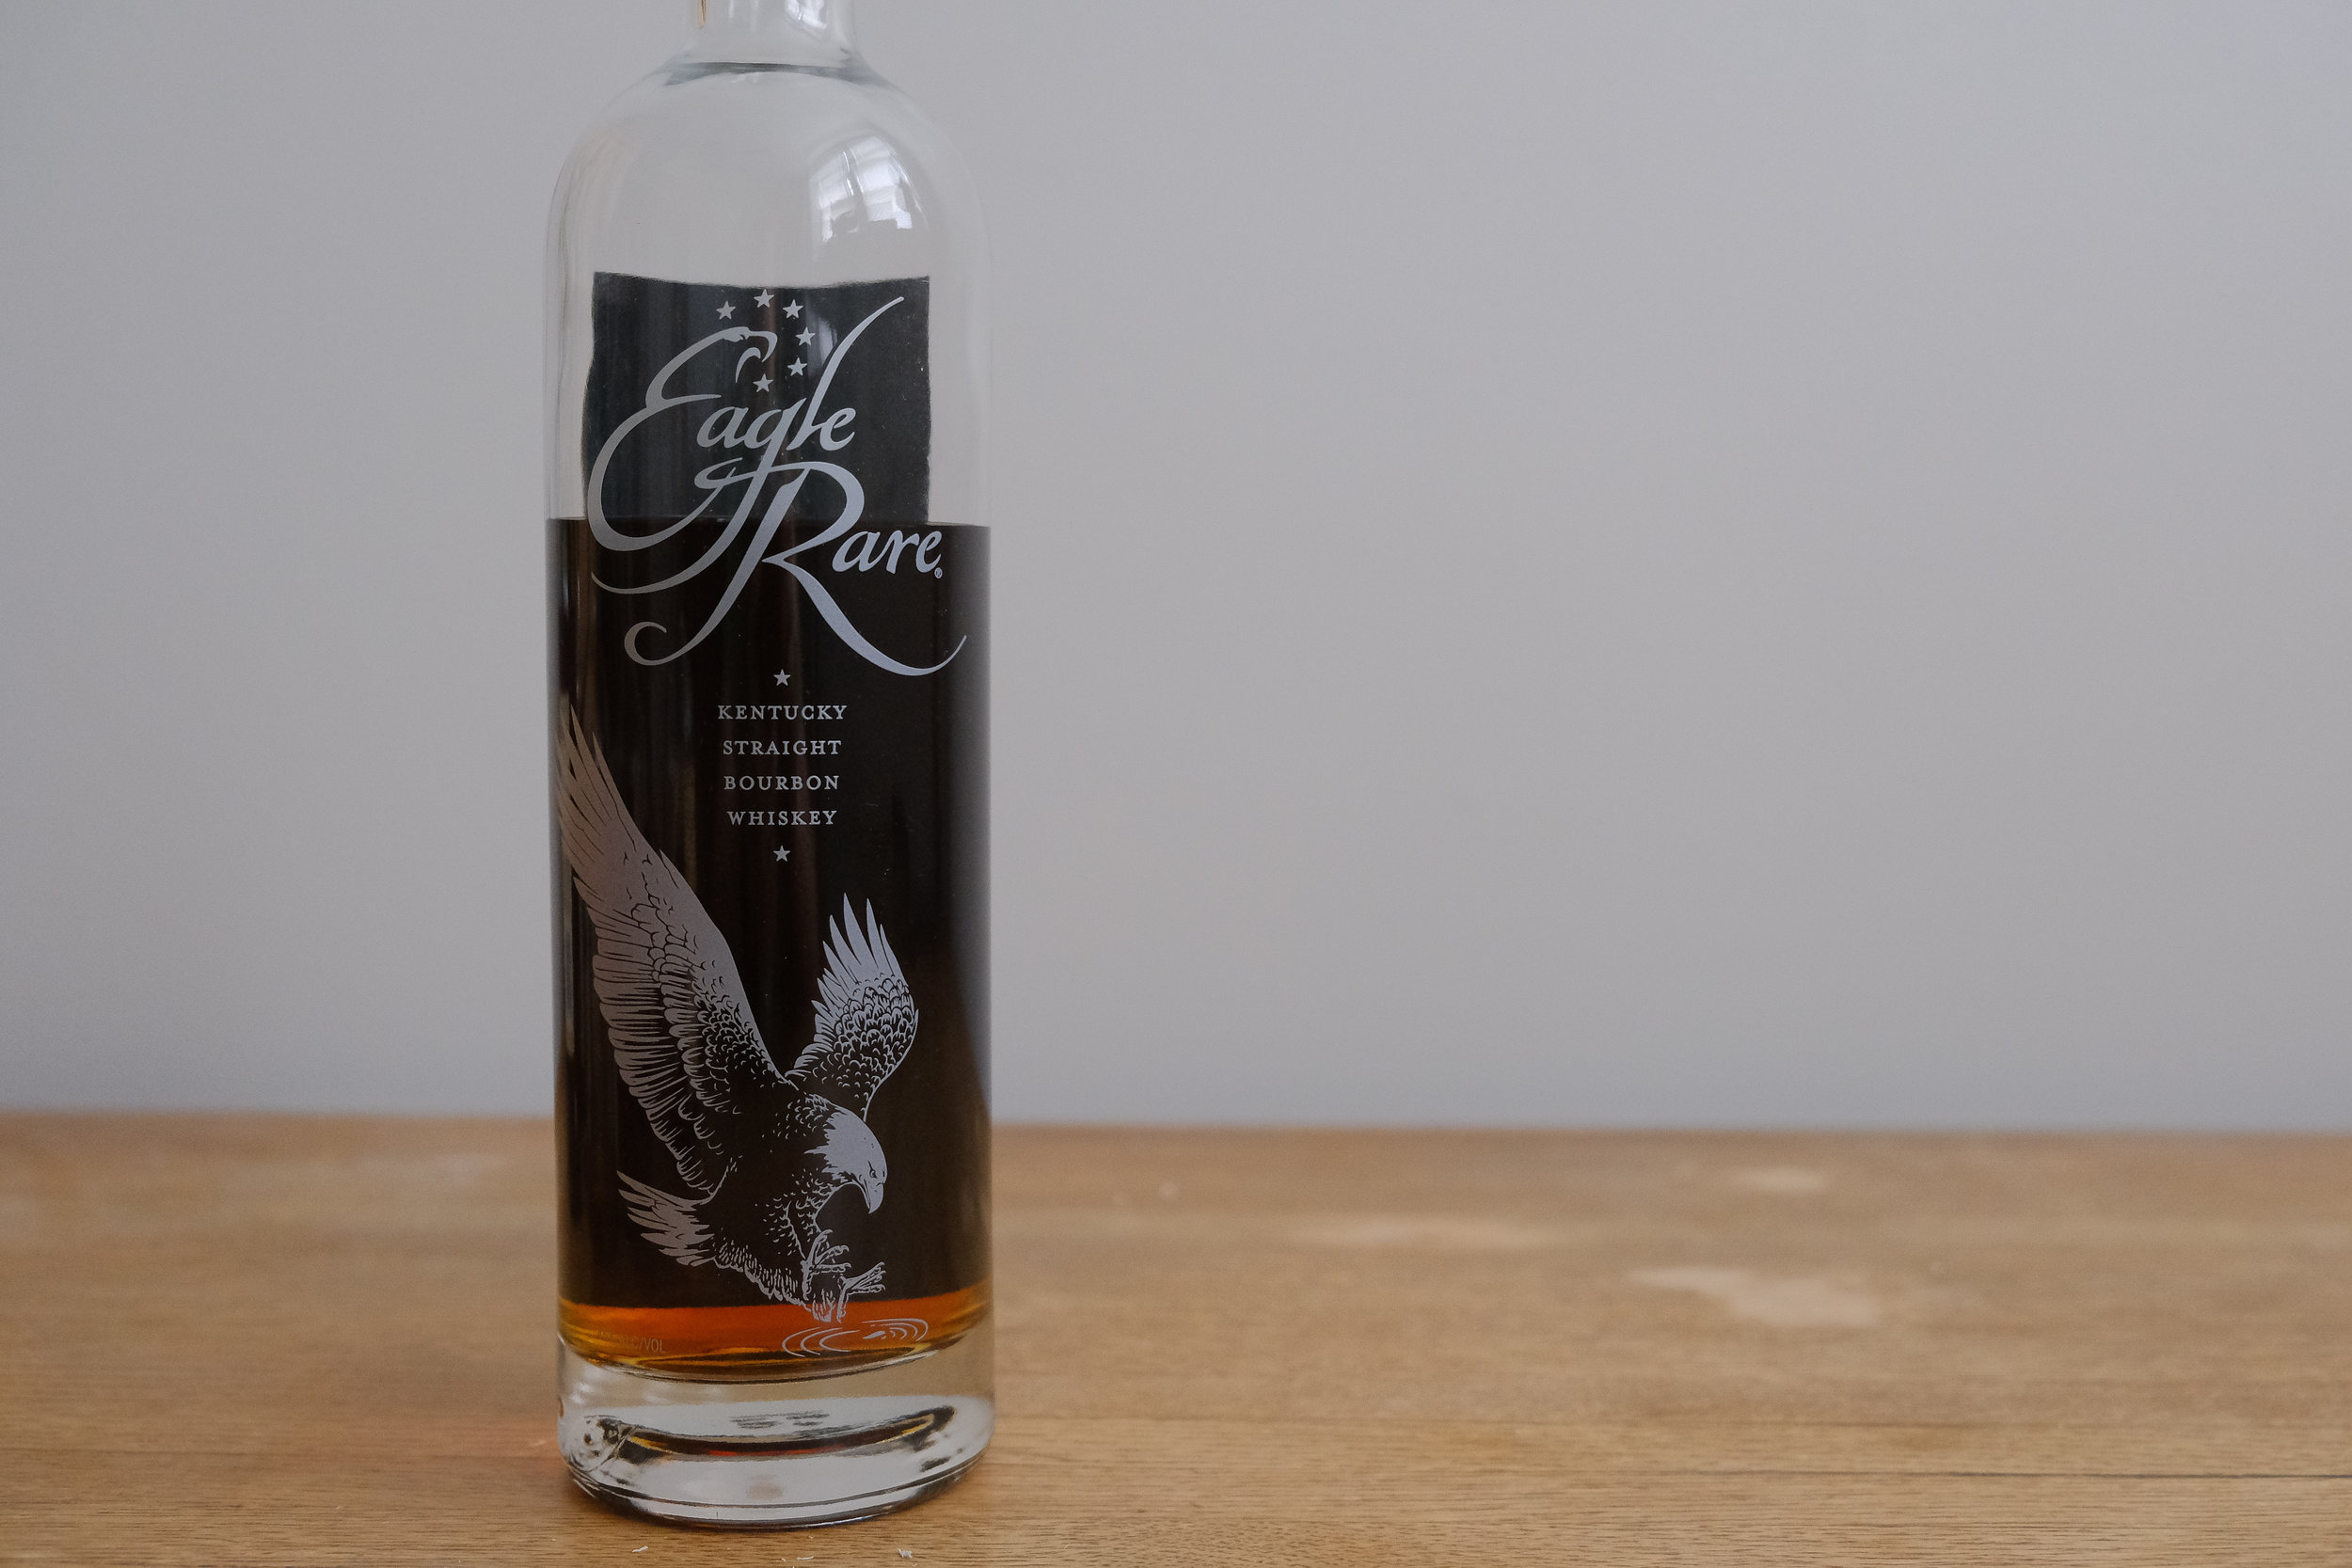 2. Eagle Rare 10 year - Buffalo Trace makes some of the most awarded bourbons on the market. This takes their signature release, ages it a few more years and perfects an already wonderful bottle.